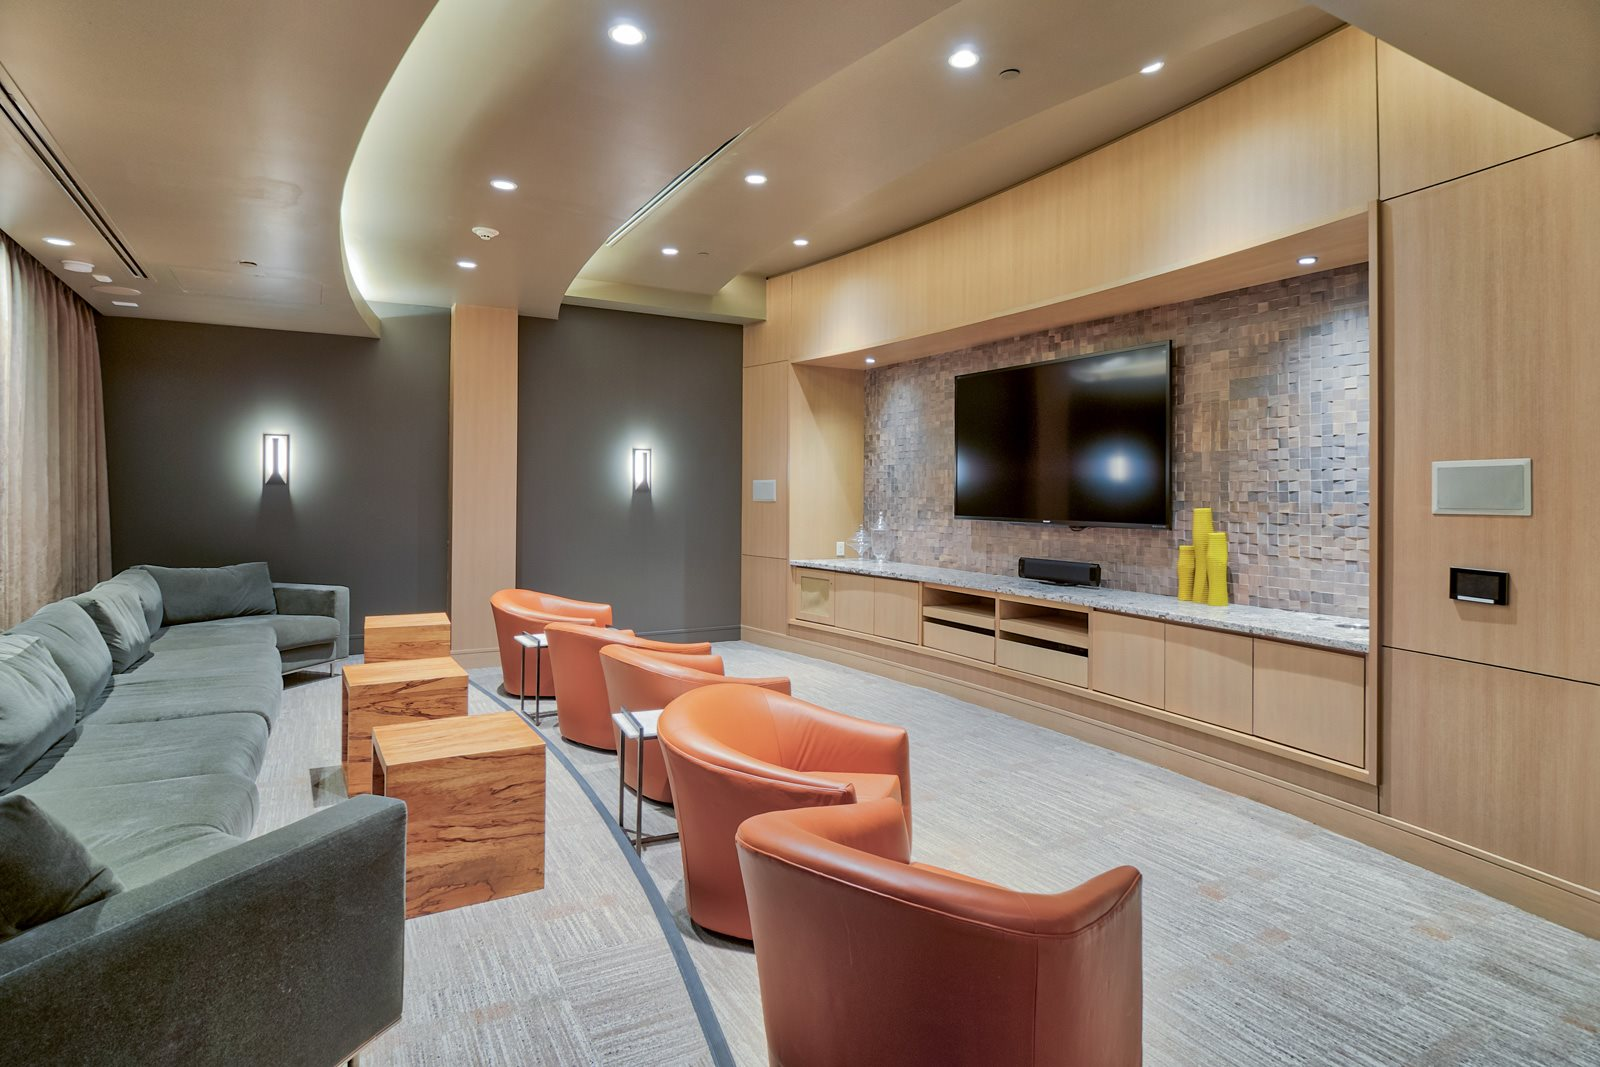 Screening and Movie Room at Olympic by Windsor, 936 S. Olive St, Los Angeles